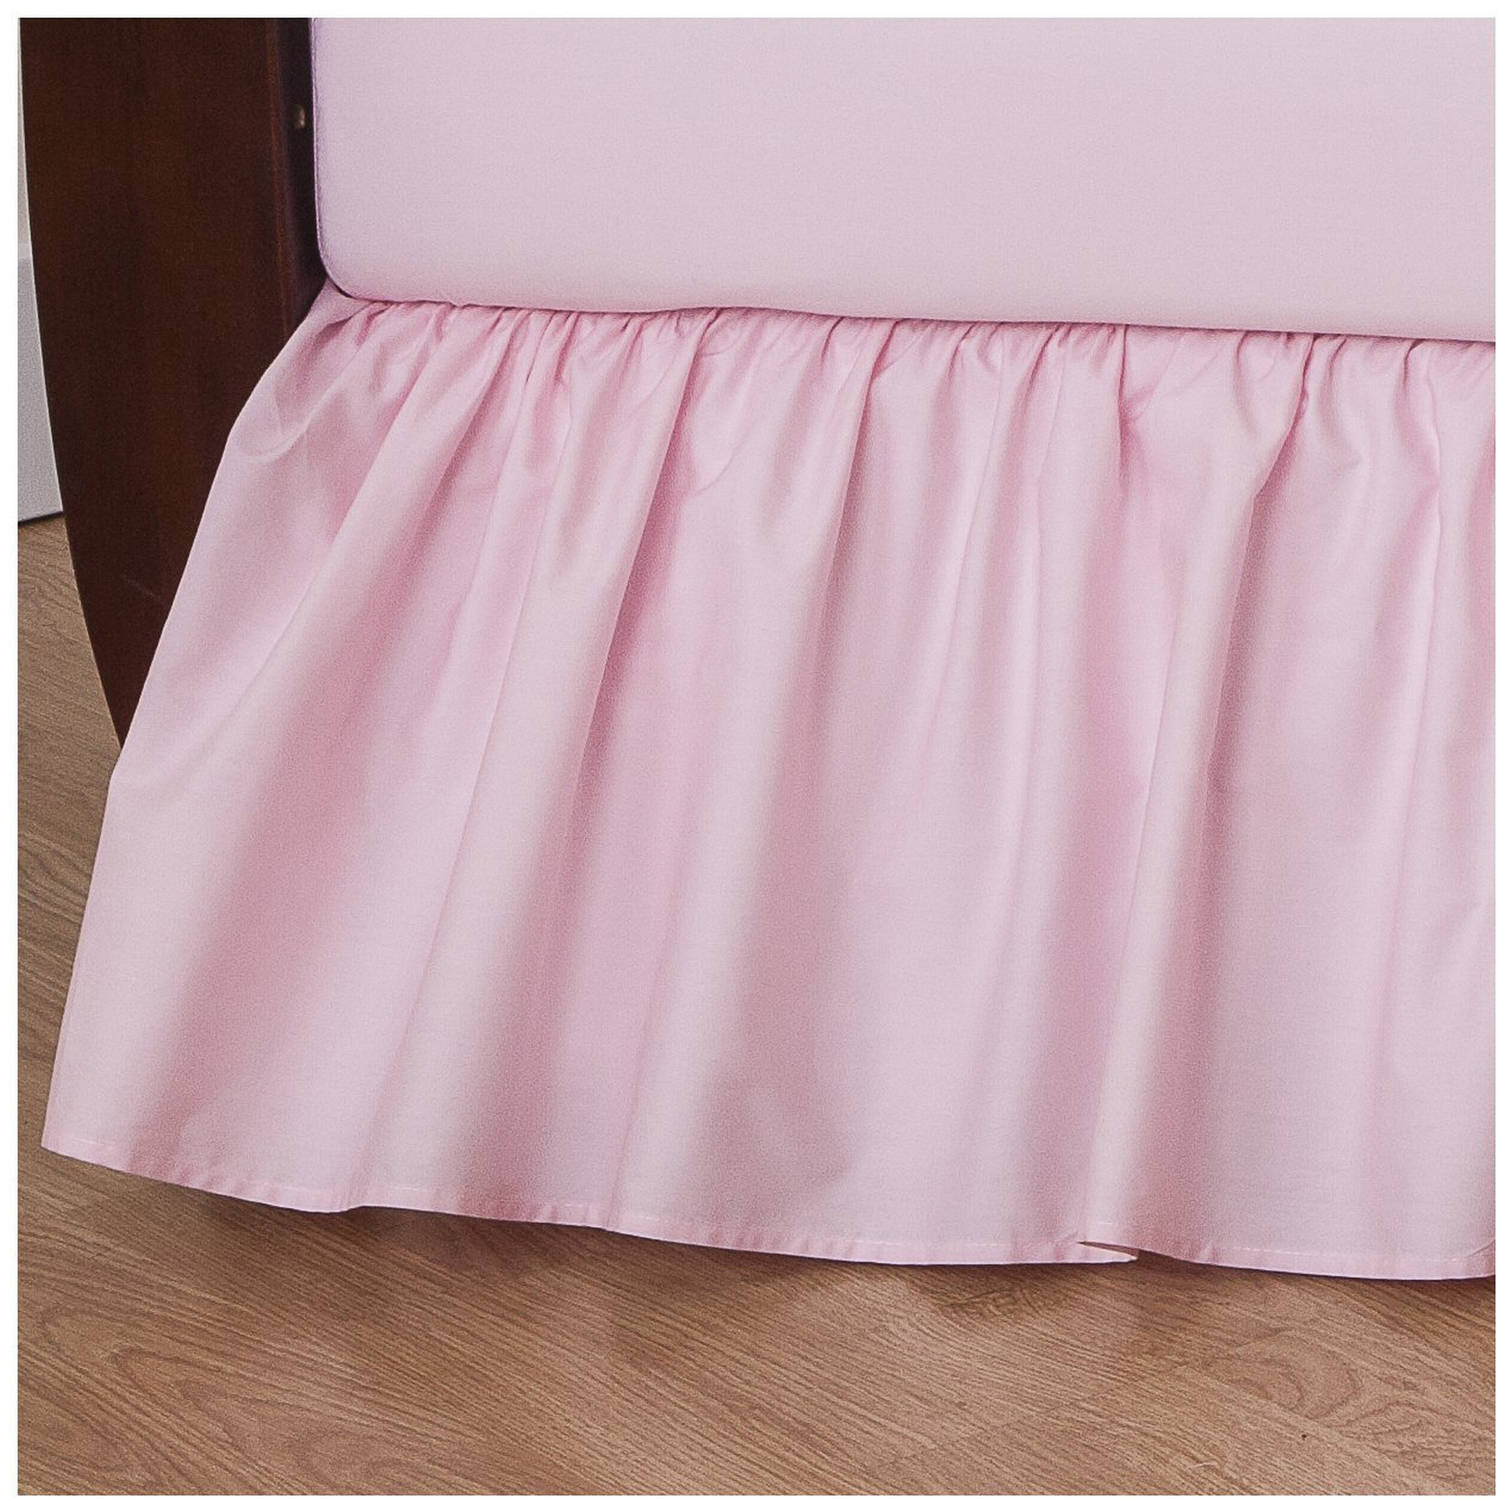 TL Care Cotton Percale Crib Bed Skirt, Pink